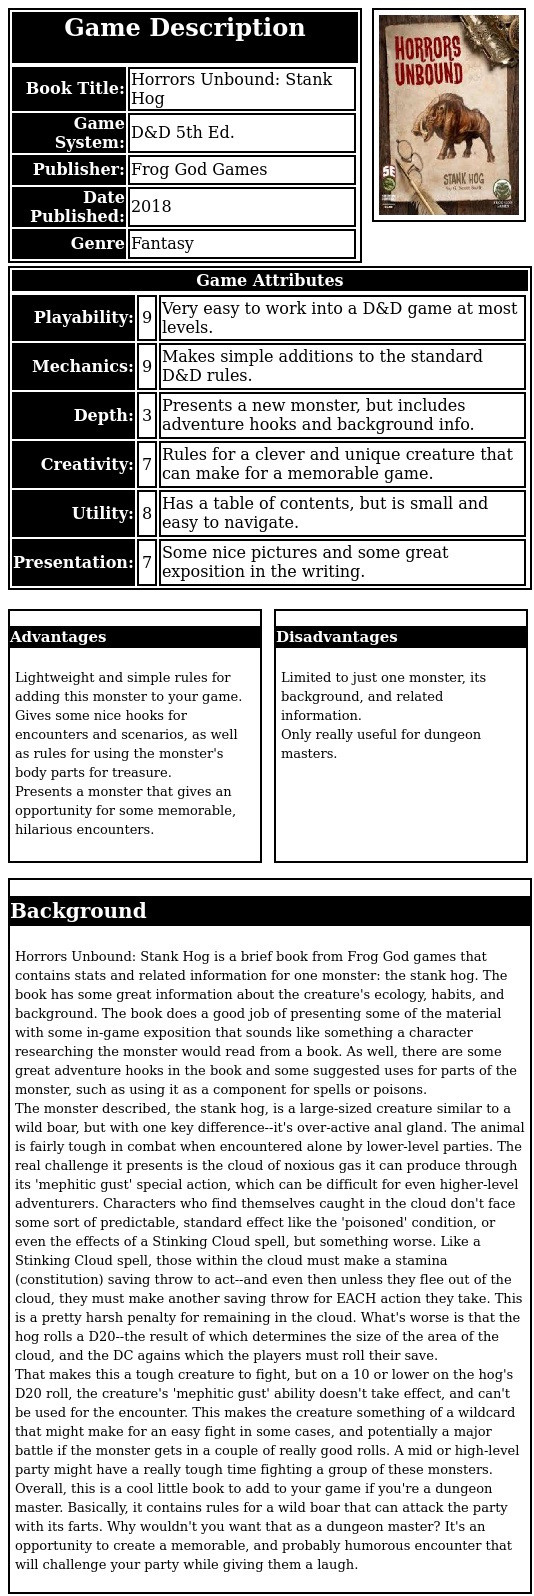 Horrors Unbound: Stank Hog is a brief book from Frog God games that contains stats and related information for one monster: the stank hog. The book has some great information about the creature's ecology, habits, and background. The book does a good job of presenting some of the material with some in-game exposition that sounds like something a character researching the monster would read from a book. As well, there are some great adventure hooks in the book and some suggested uses for parts of the monster, such as using it as a component for spells or poisons.  The monster described, the stank hog, is a large-sized creature similar to a wild boar, but with one key difference--it's over-active anal gland. The animal is fairly tough in combat when encountered alone by lower-level parties. The real challenge it presents is the cloud of noxious gas it can produce through its 'mephitic gust' special action, which can be difficult for even higher-level adventurers. Characters who find themselves caught in the cloud don't face some sort of predictable, standard effect like the 'poisoned' condition, or even the effects of a Stinking Cloud spell, but something worse. Like a Stinking Cloud spell, those within the cloud must make a stamina (constitution) saving throw to act--and even then unless they flee out of the cloud, they must make another saving throw for EACH action they take. This is a pretty harsh penalty for remaining in the cloud. What's worse is that the hog rolls a D20--the result of which determines the size of the area of the cloud, and the DC agains which the players must roll their save.  That makes this a tough creature to fight, but on a 10 or lower on the hog's D20 roll, the creature's 'mephitic gust' ability doesn't take effect, and can't be used for the encounter. This makes the creature something of a wildcard that might make for an easy fight in some cases, and potentially a major battle if the monster gets in a couple of really good rolls. A mid or h